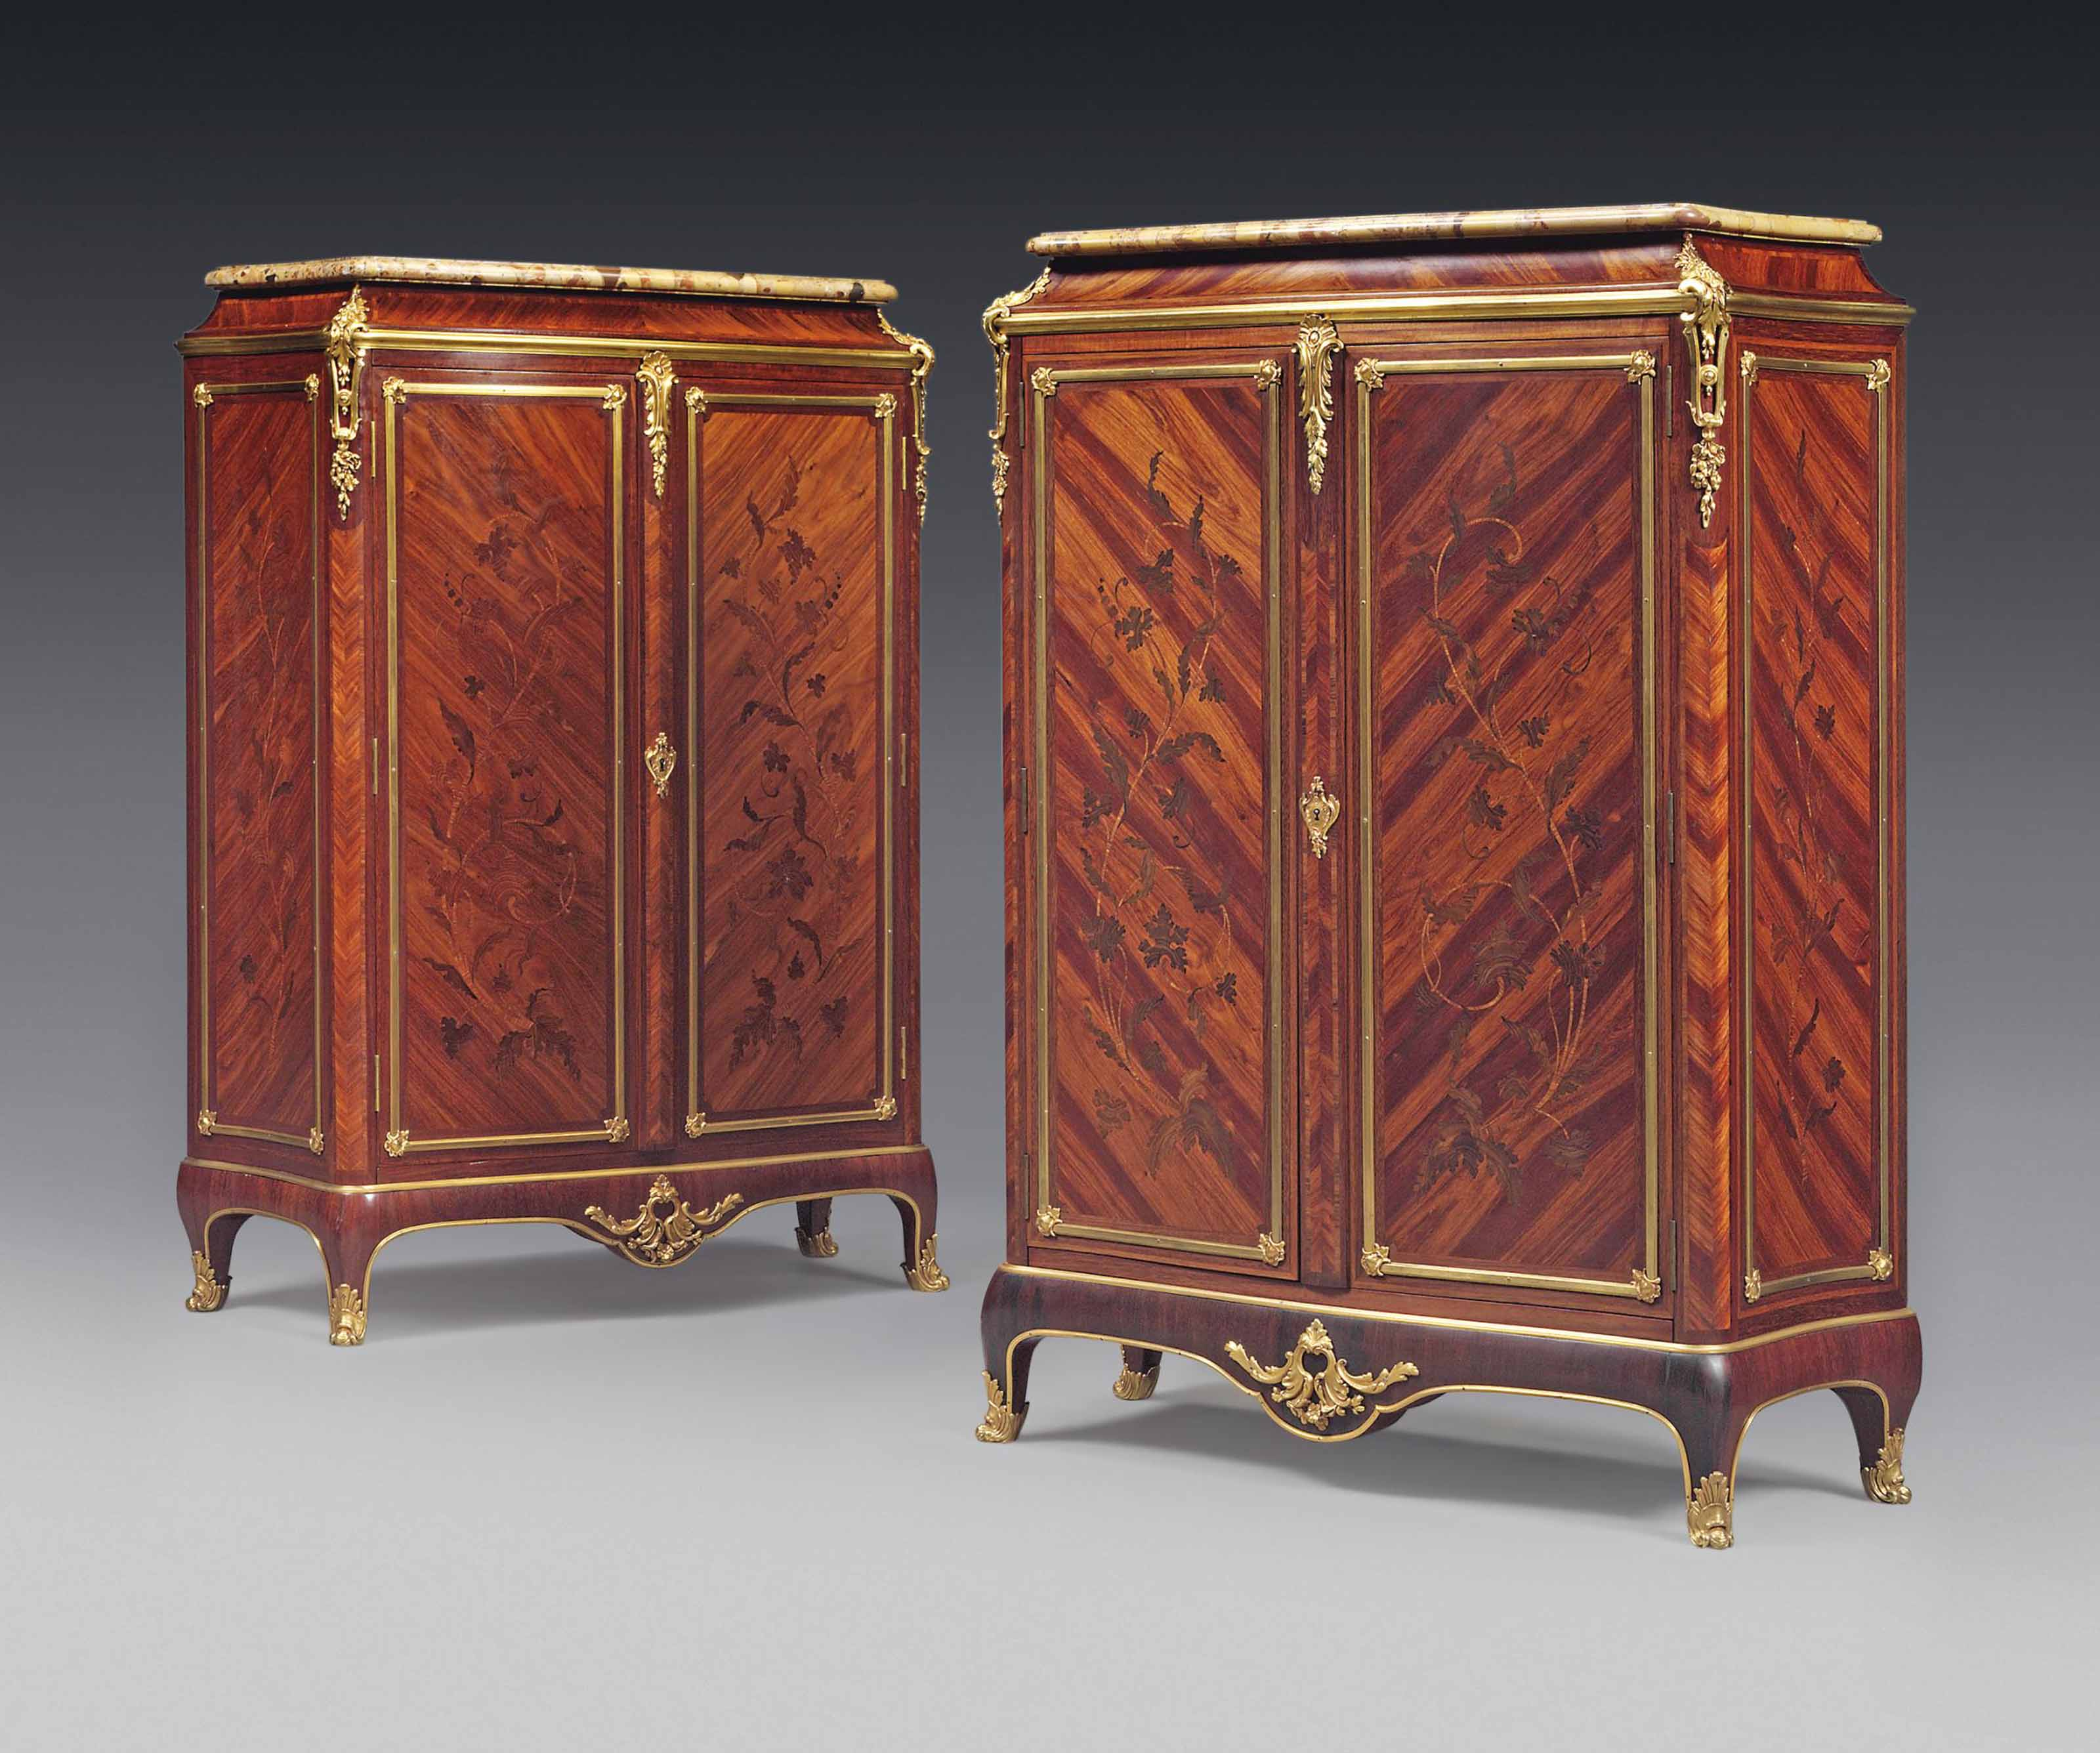 A PAIR OF FRENCH ORMOLU-MOUNTED KINGWOOD, TULIPWOOD AND BOIS DU BOUT MARQUETRY MEUBLES À HAUTEUR D'APPUI